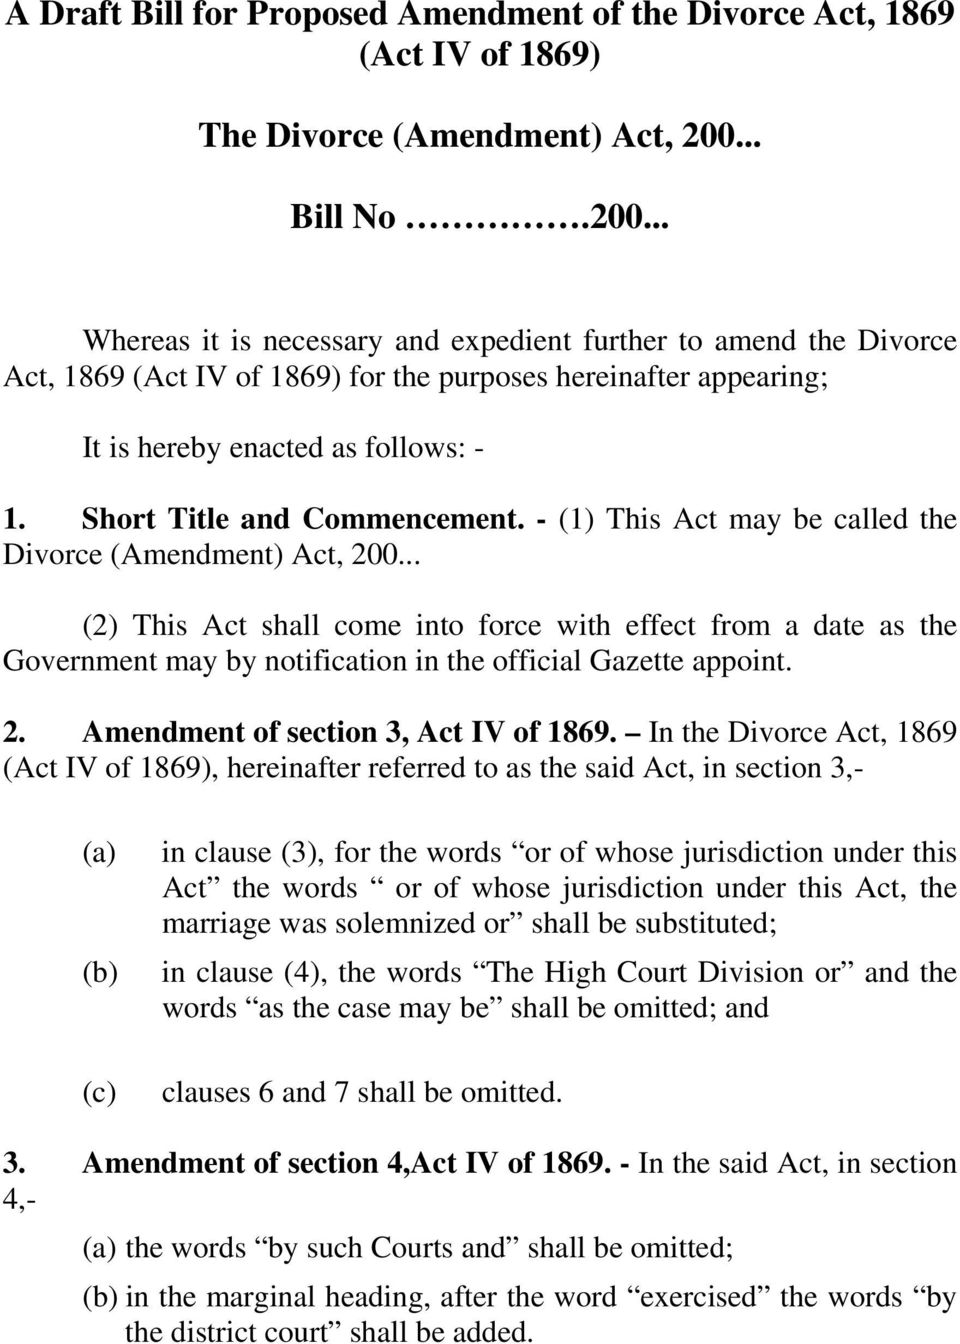 Short Title and Commencement. - (1) This Act may be called the Divorce (Amendment) Act, 200.